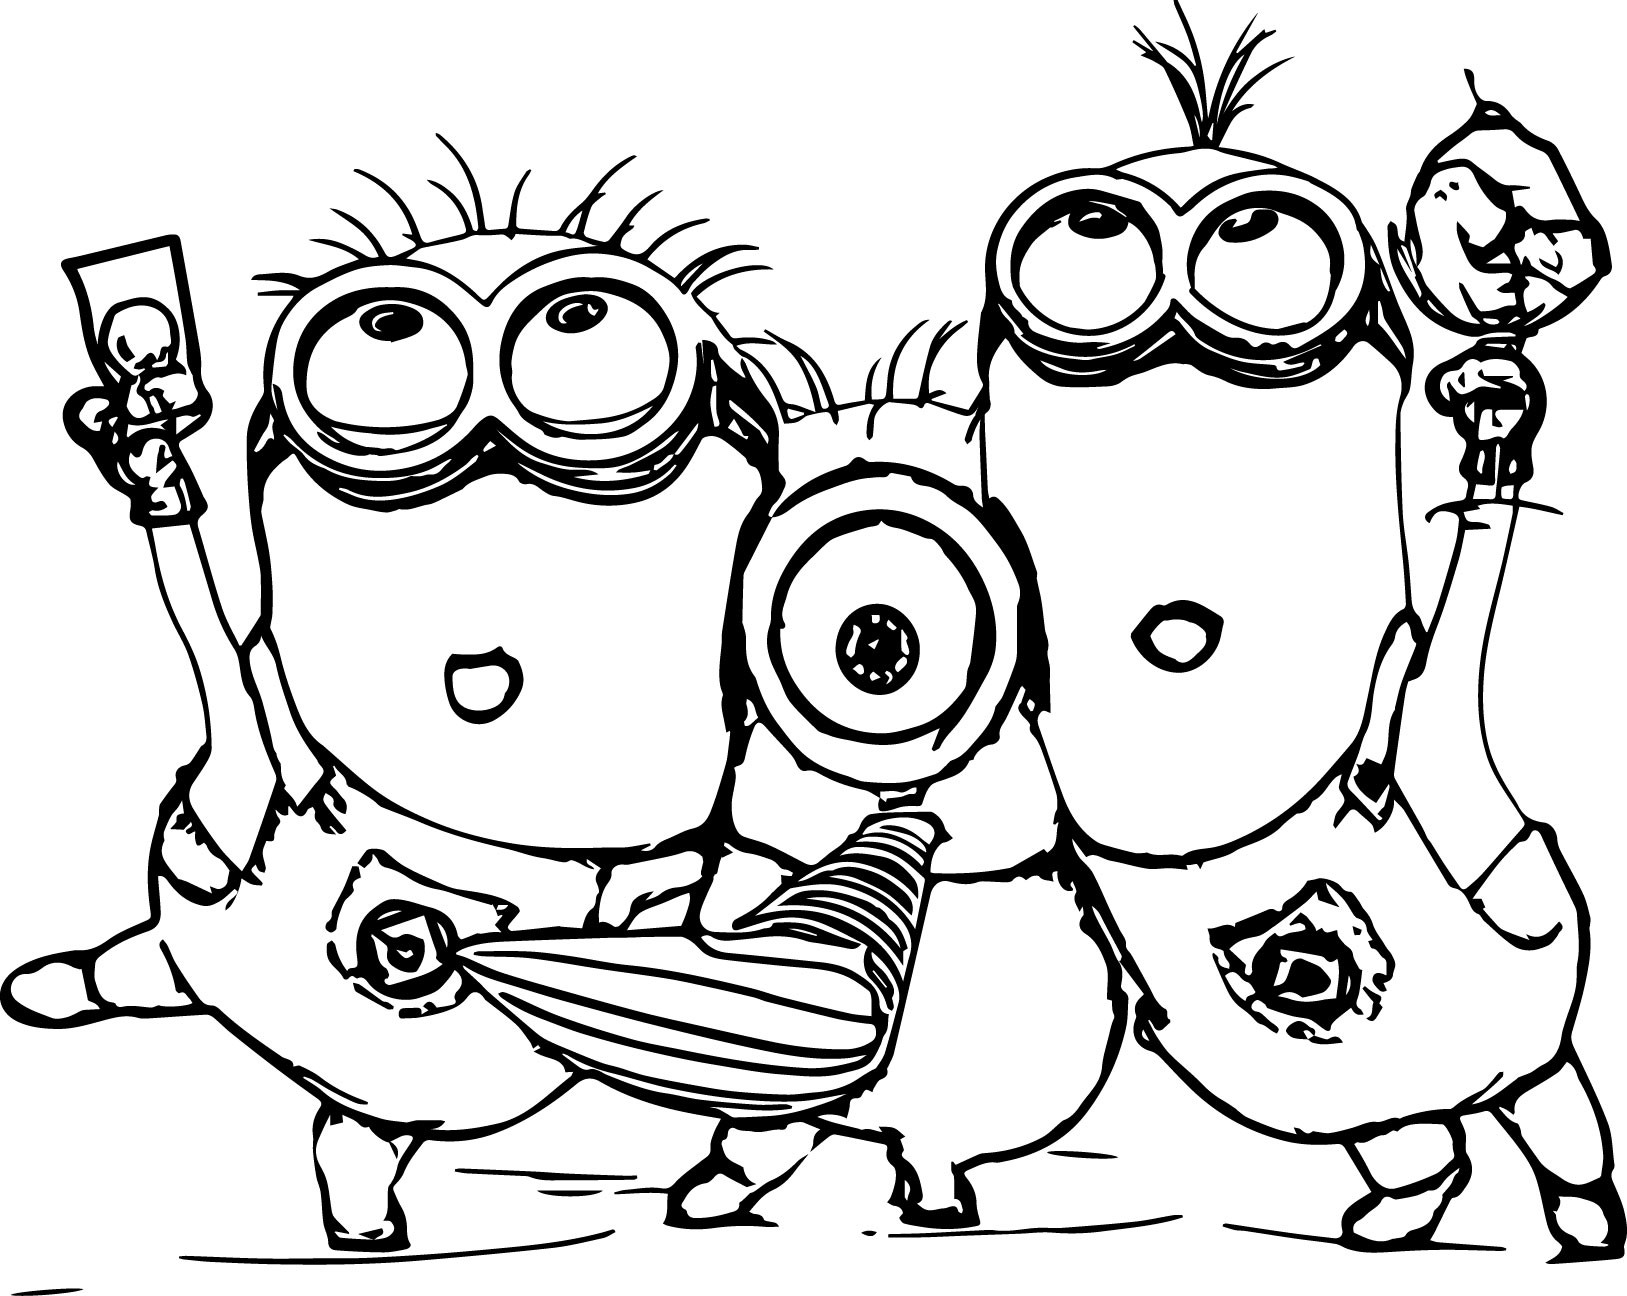 Kids Coloring Sheet  Minion Coloring Pages Best Coloring Pages For Kids